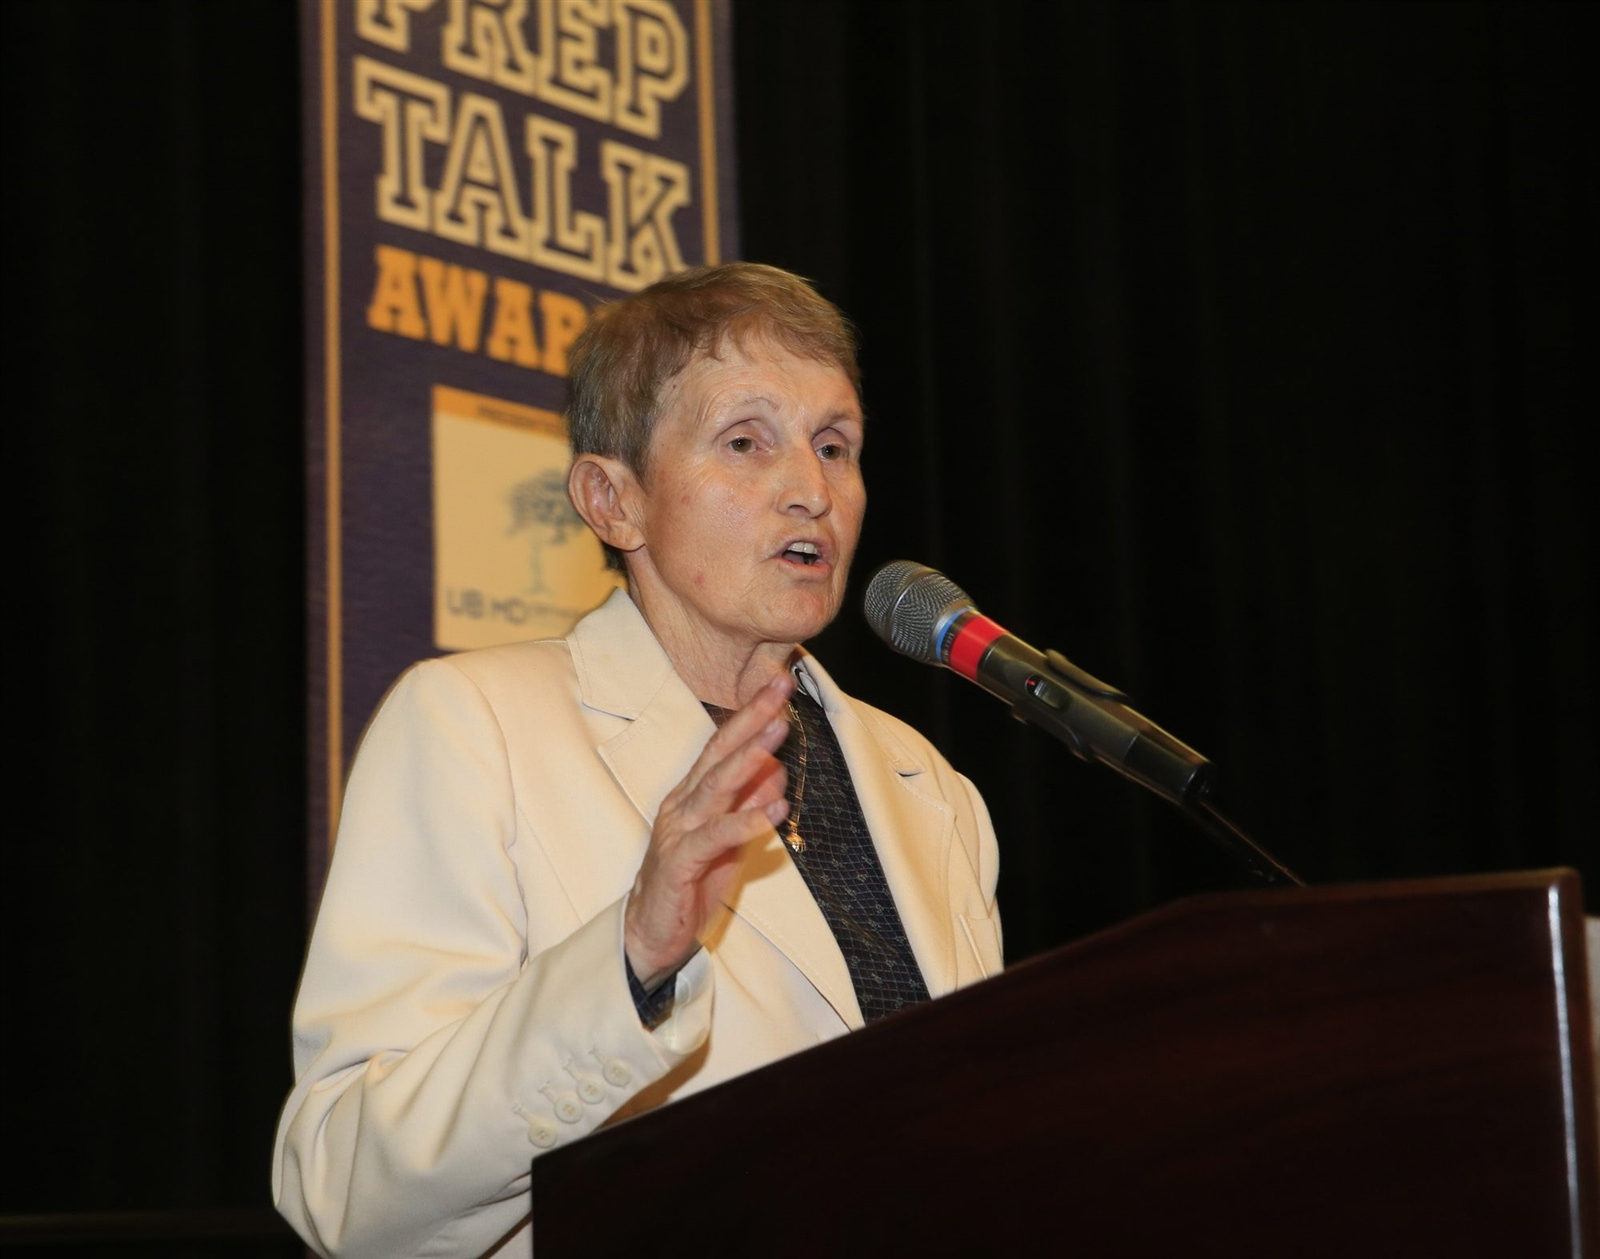 Sister Maria in 'Heaven's Hall of Fame'